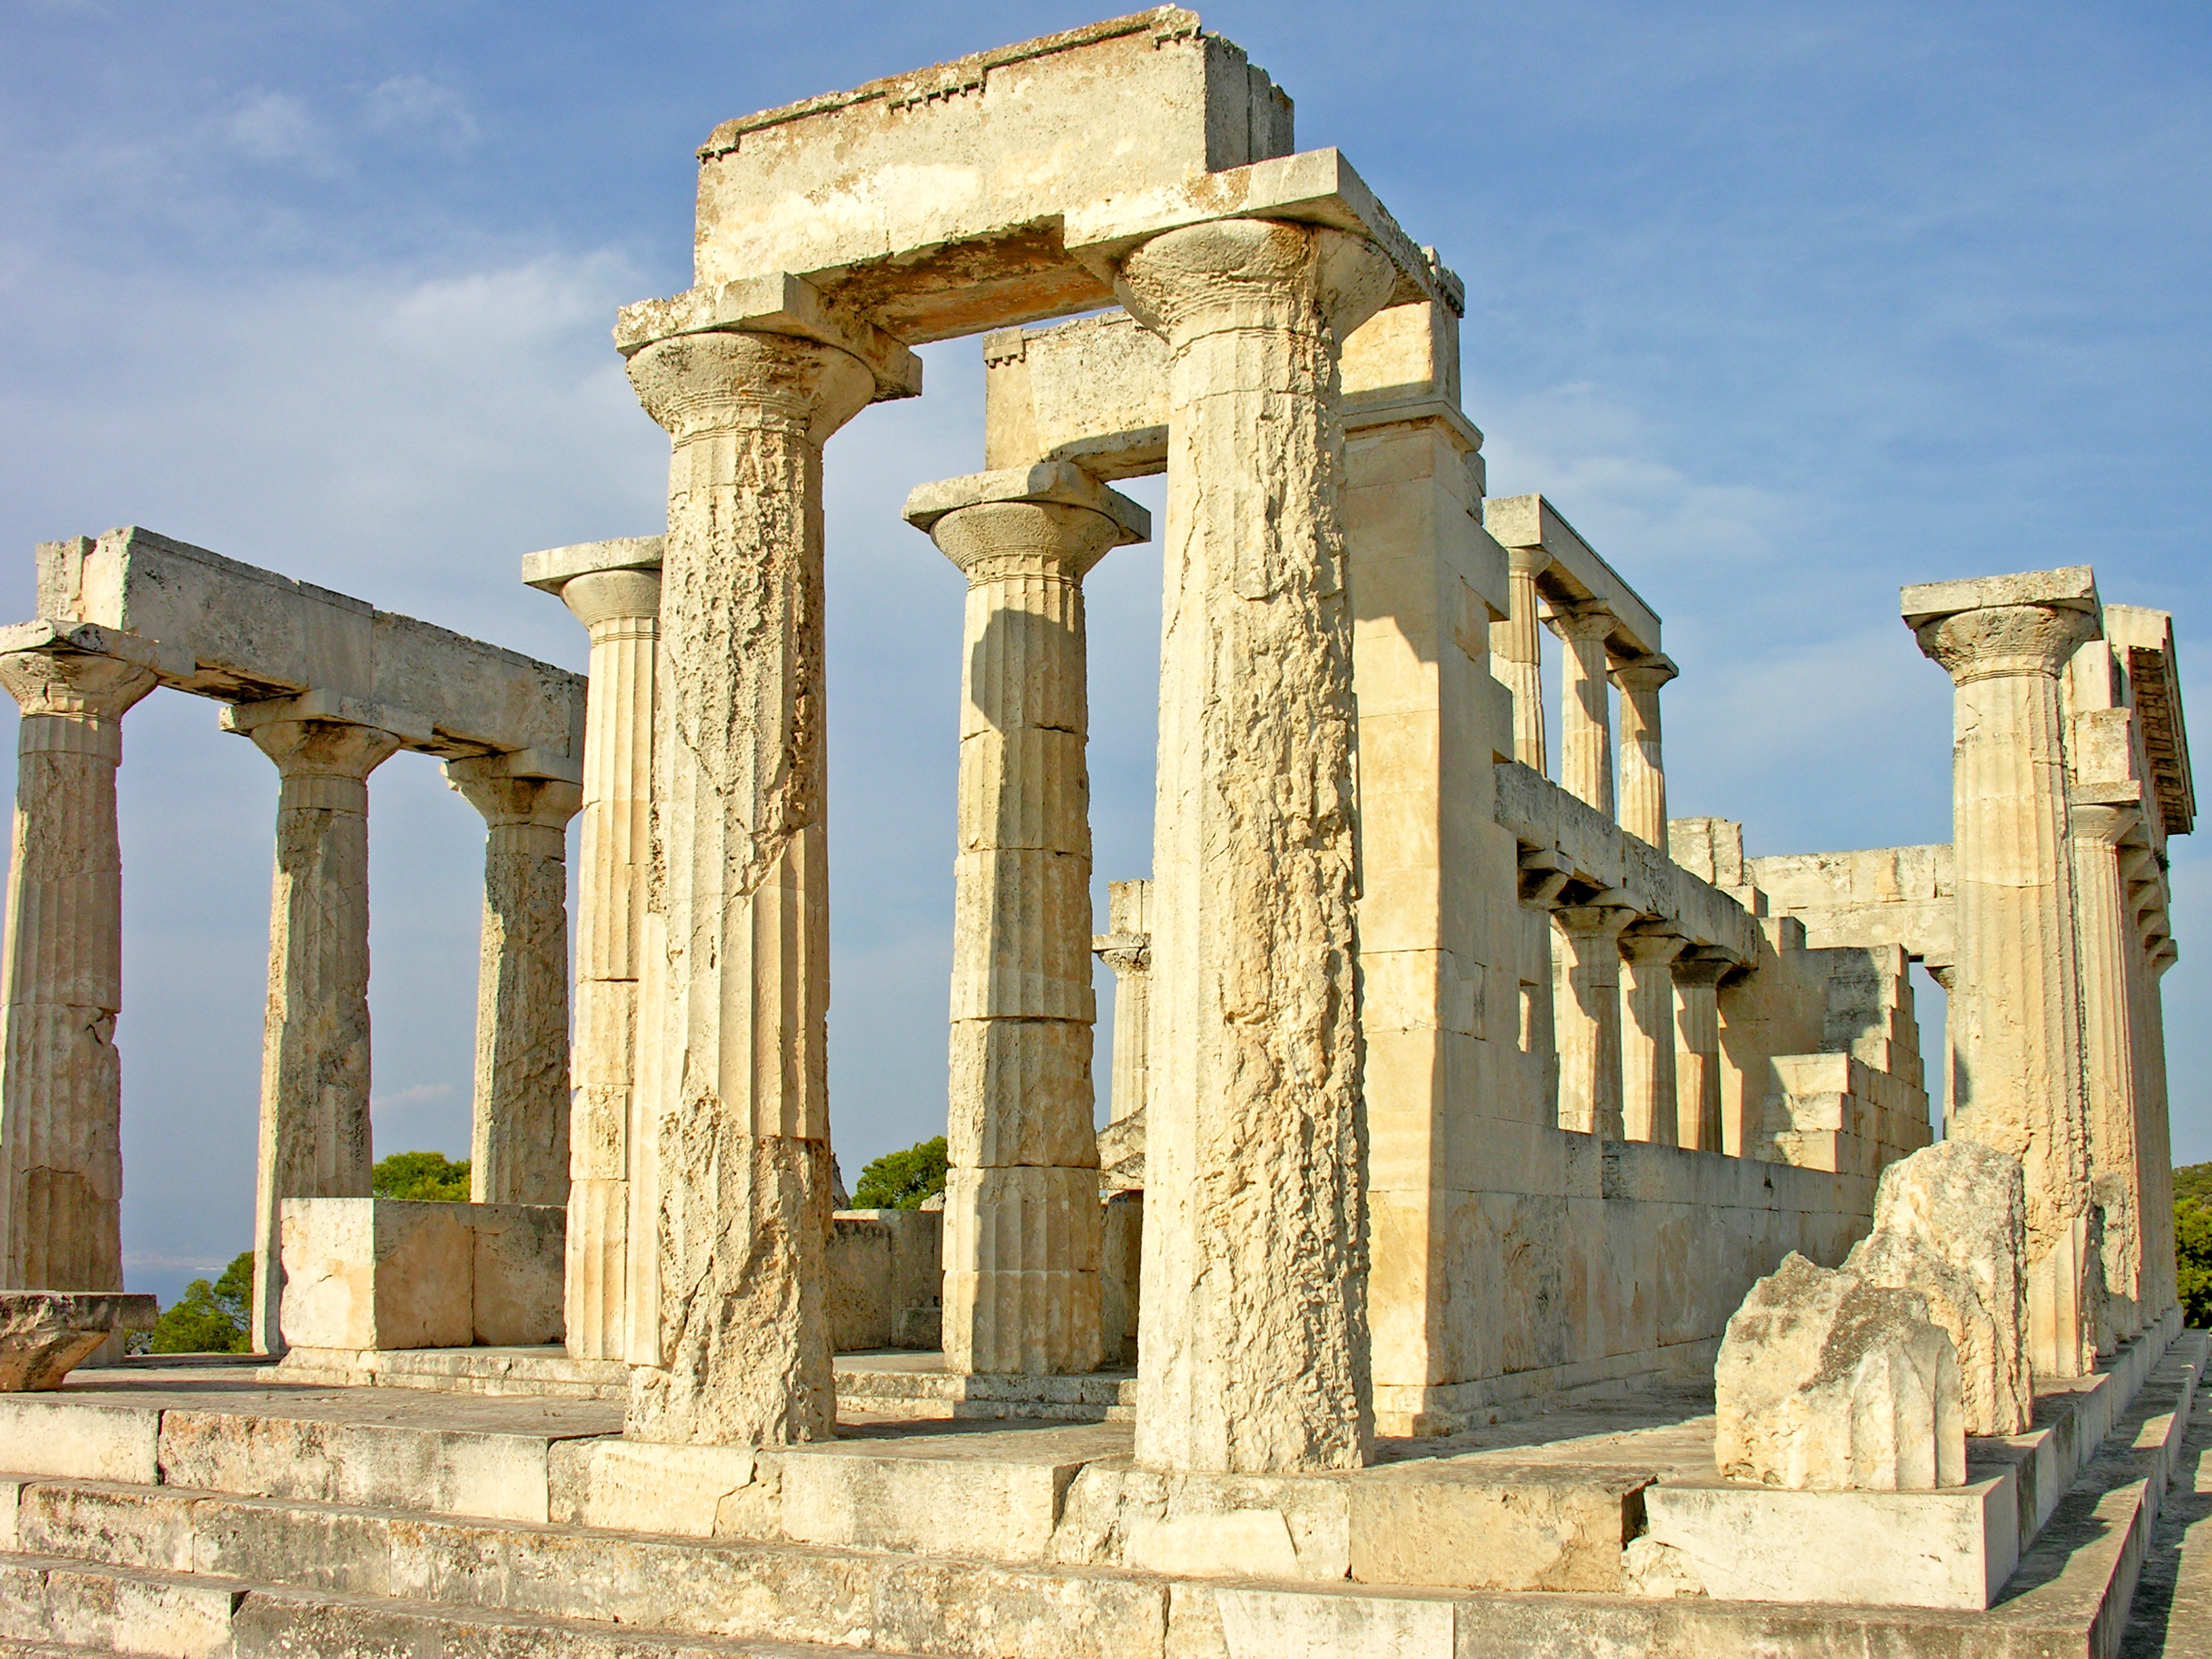 Greece-1178 - Temple of Aphaia  Flickr - Photo Sharing!